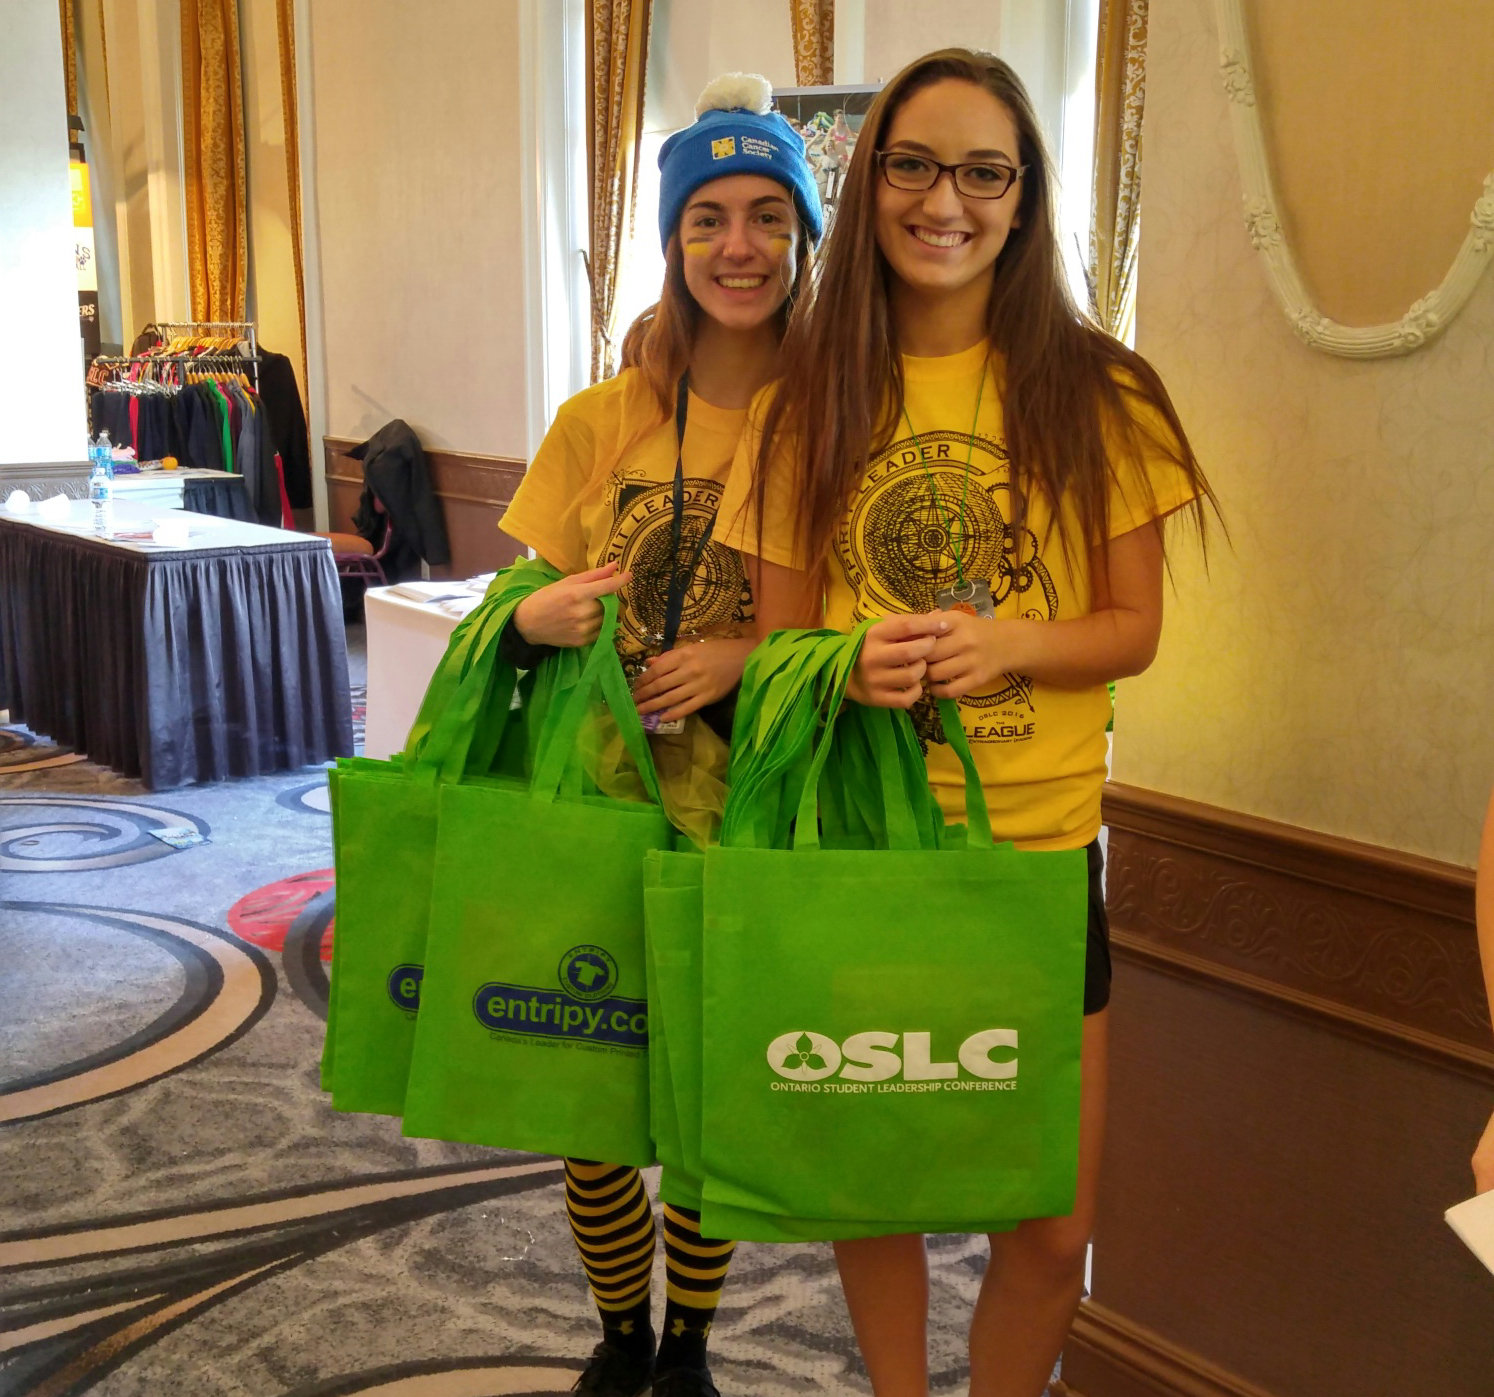 Students wearing custom t-shirts, embroidered toques and displaying custom printed totes.